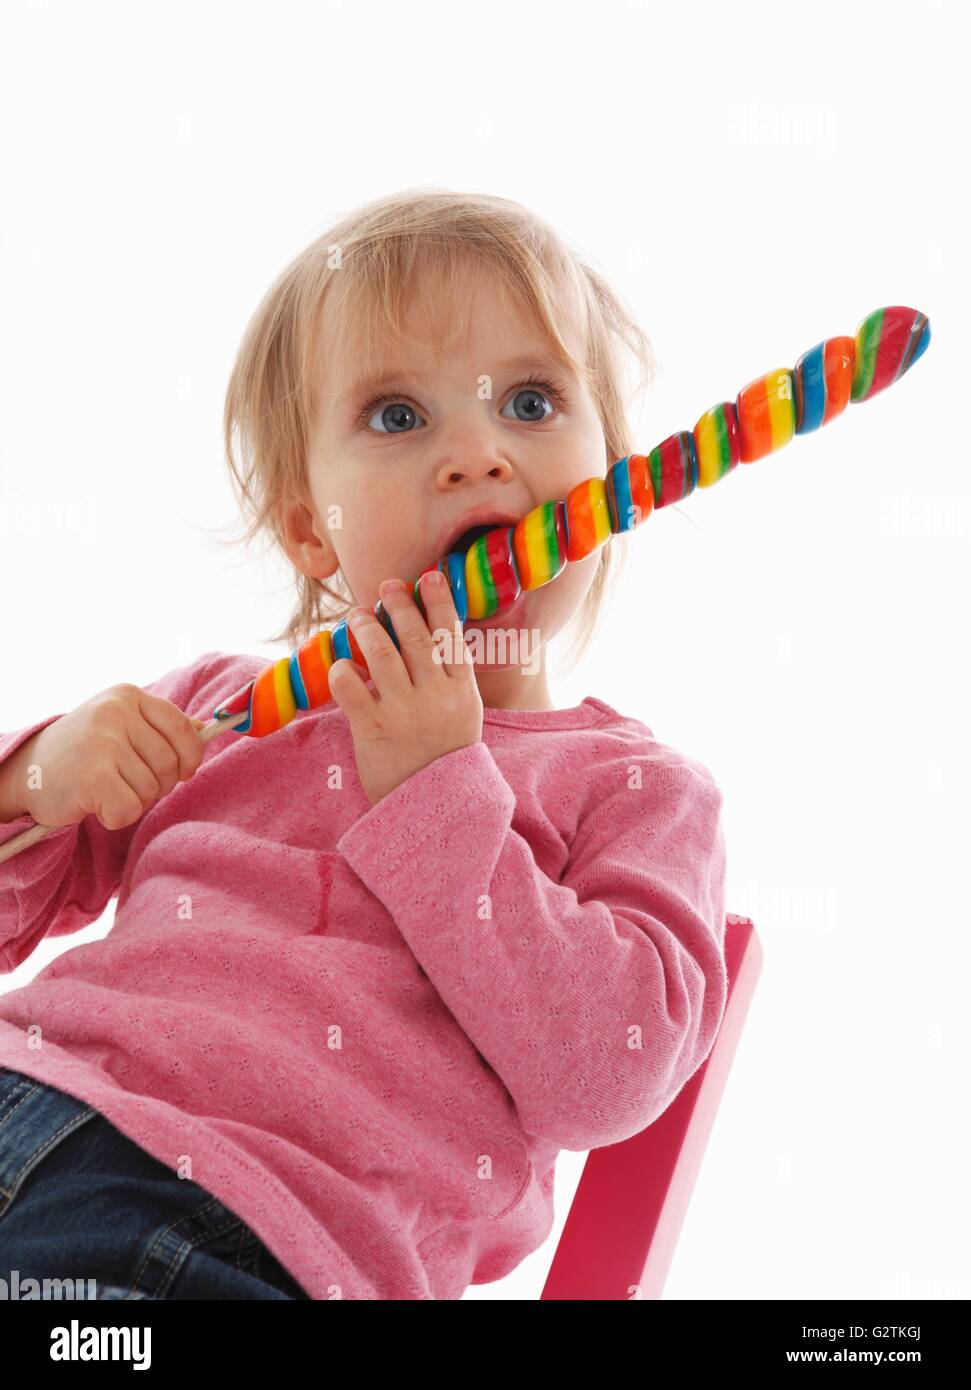 A small child eating a giant lolly - Stock Image